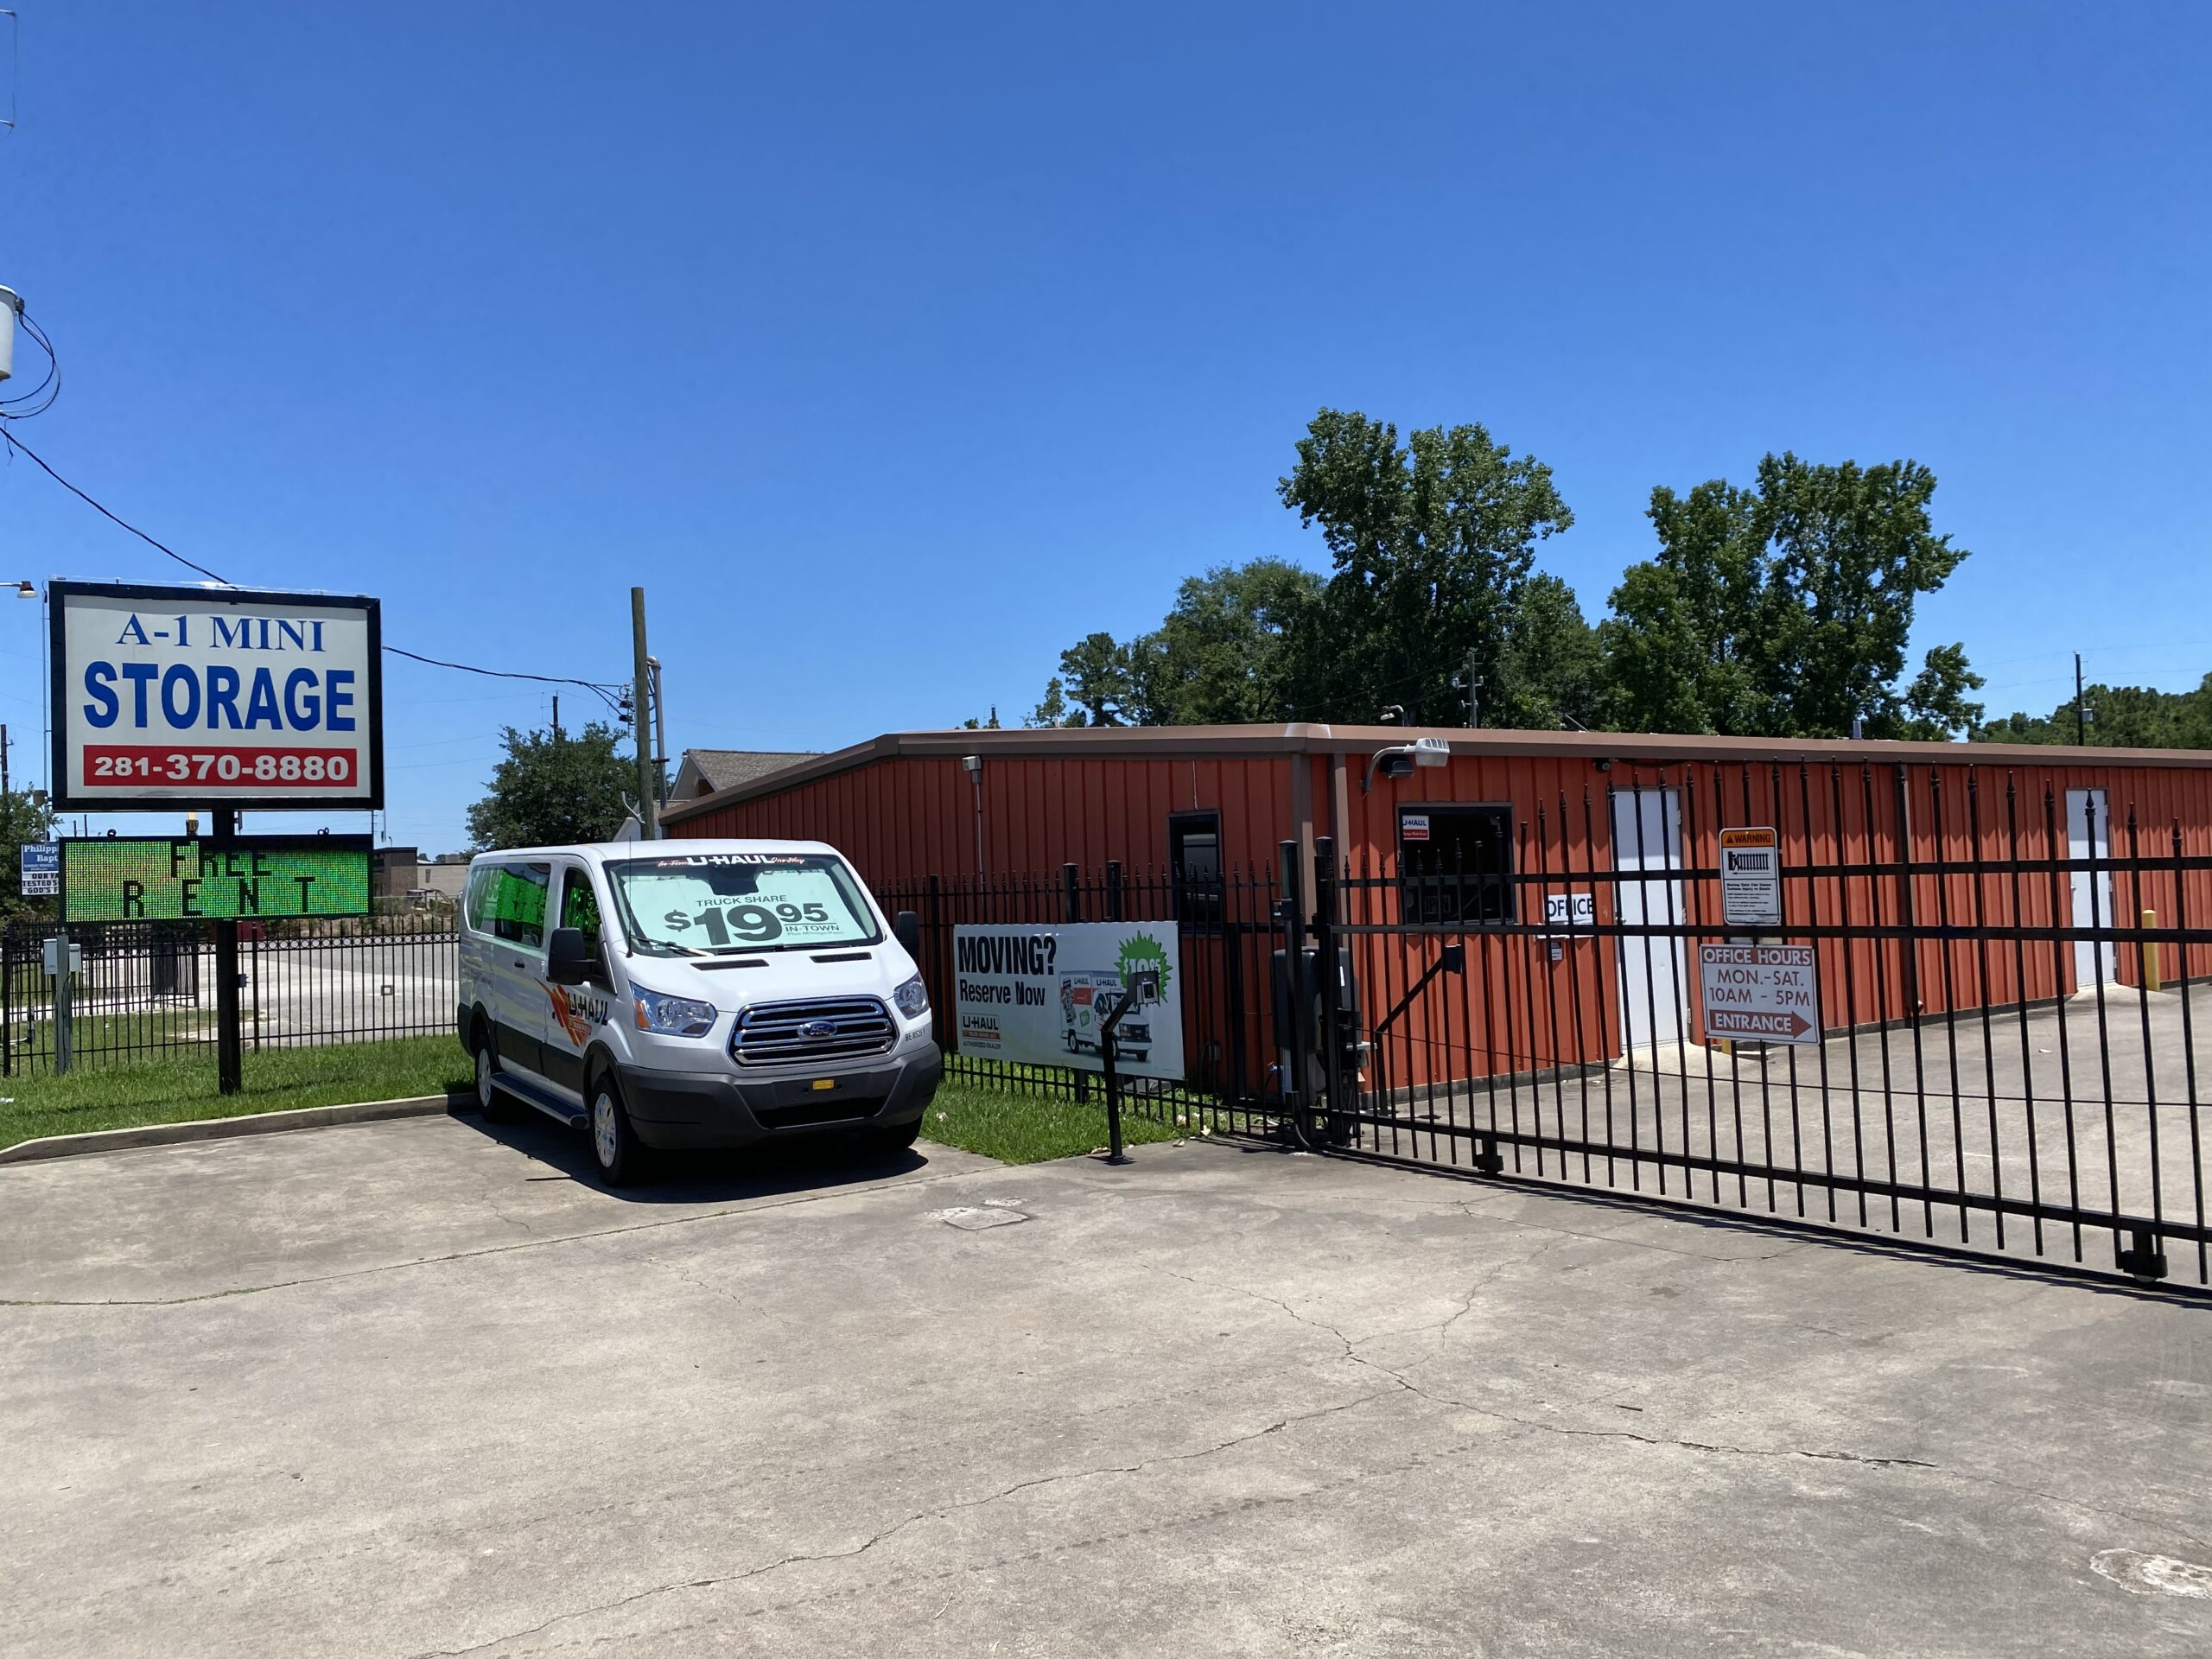 Self Storage Facility for Sale in Spring, Texas by Karr Self Storage